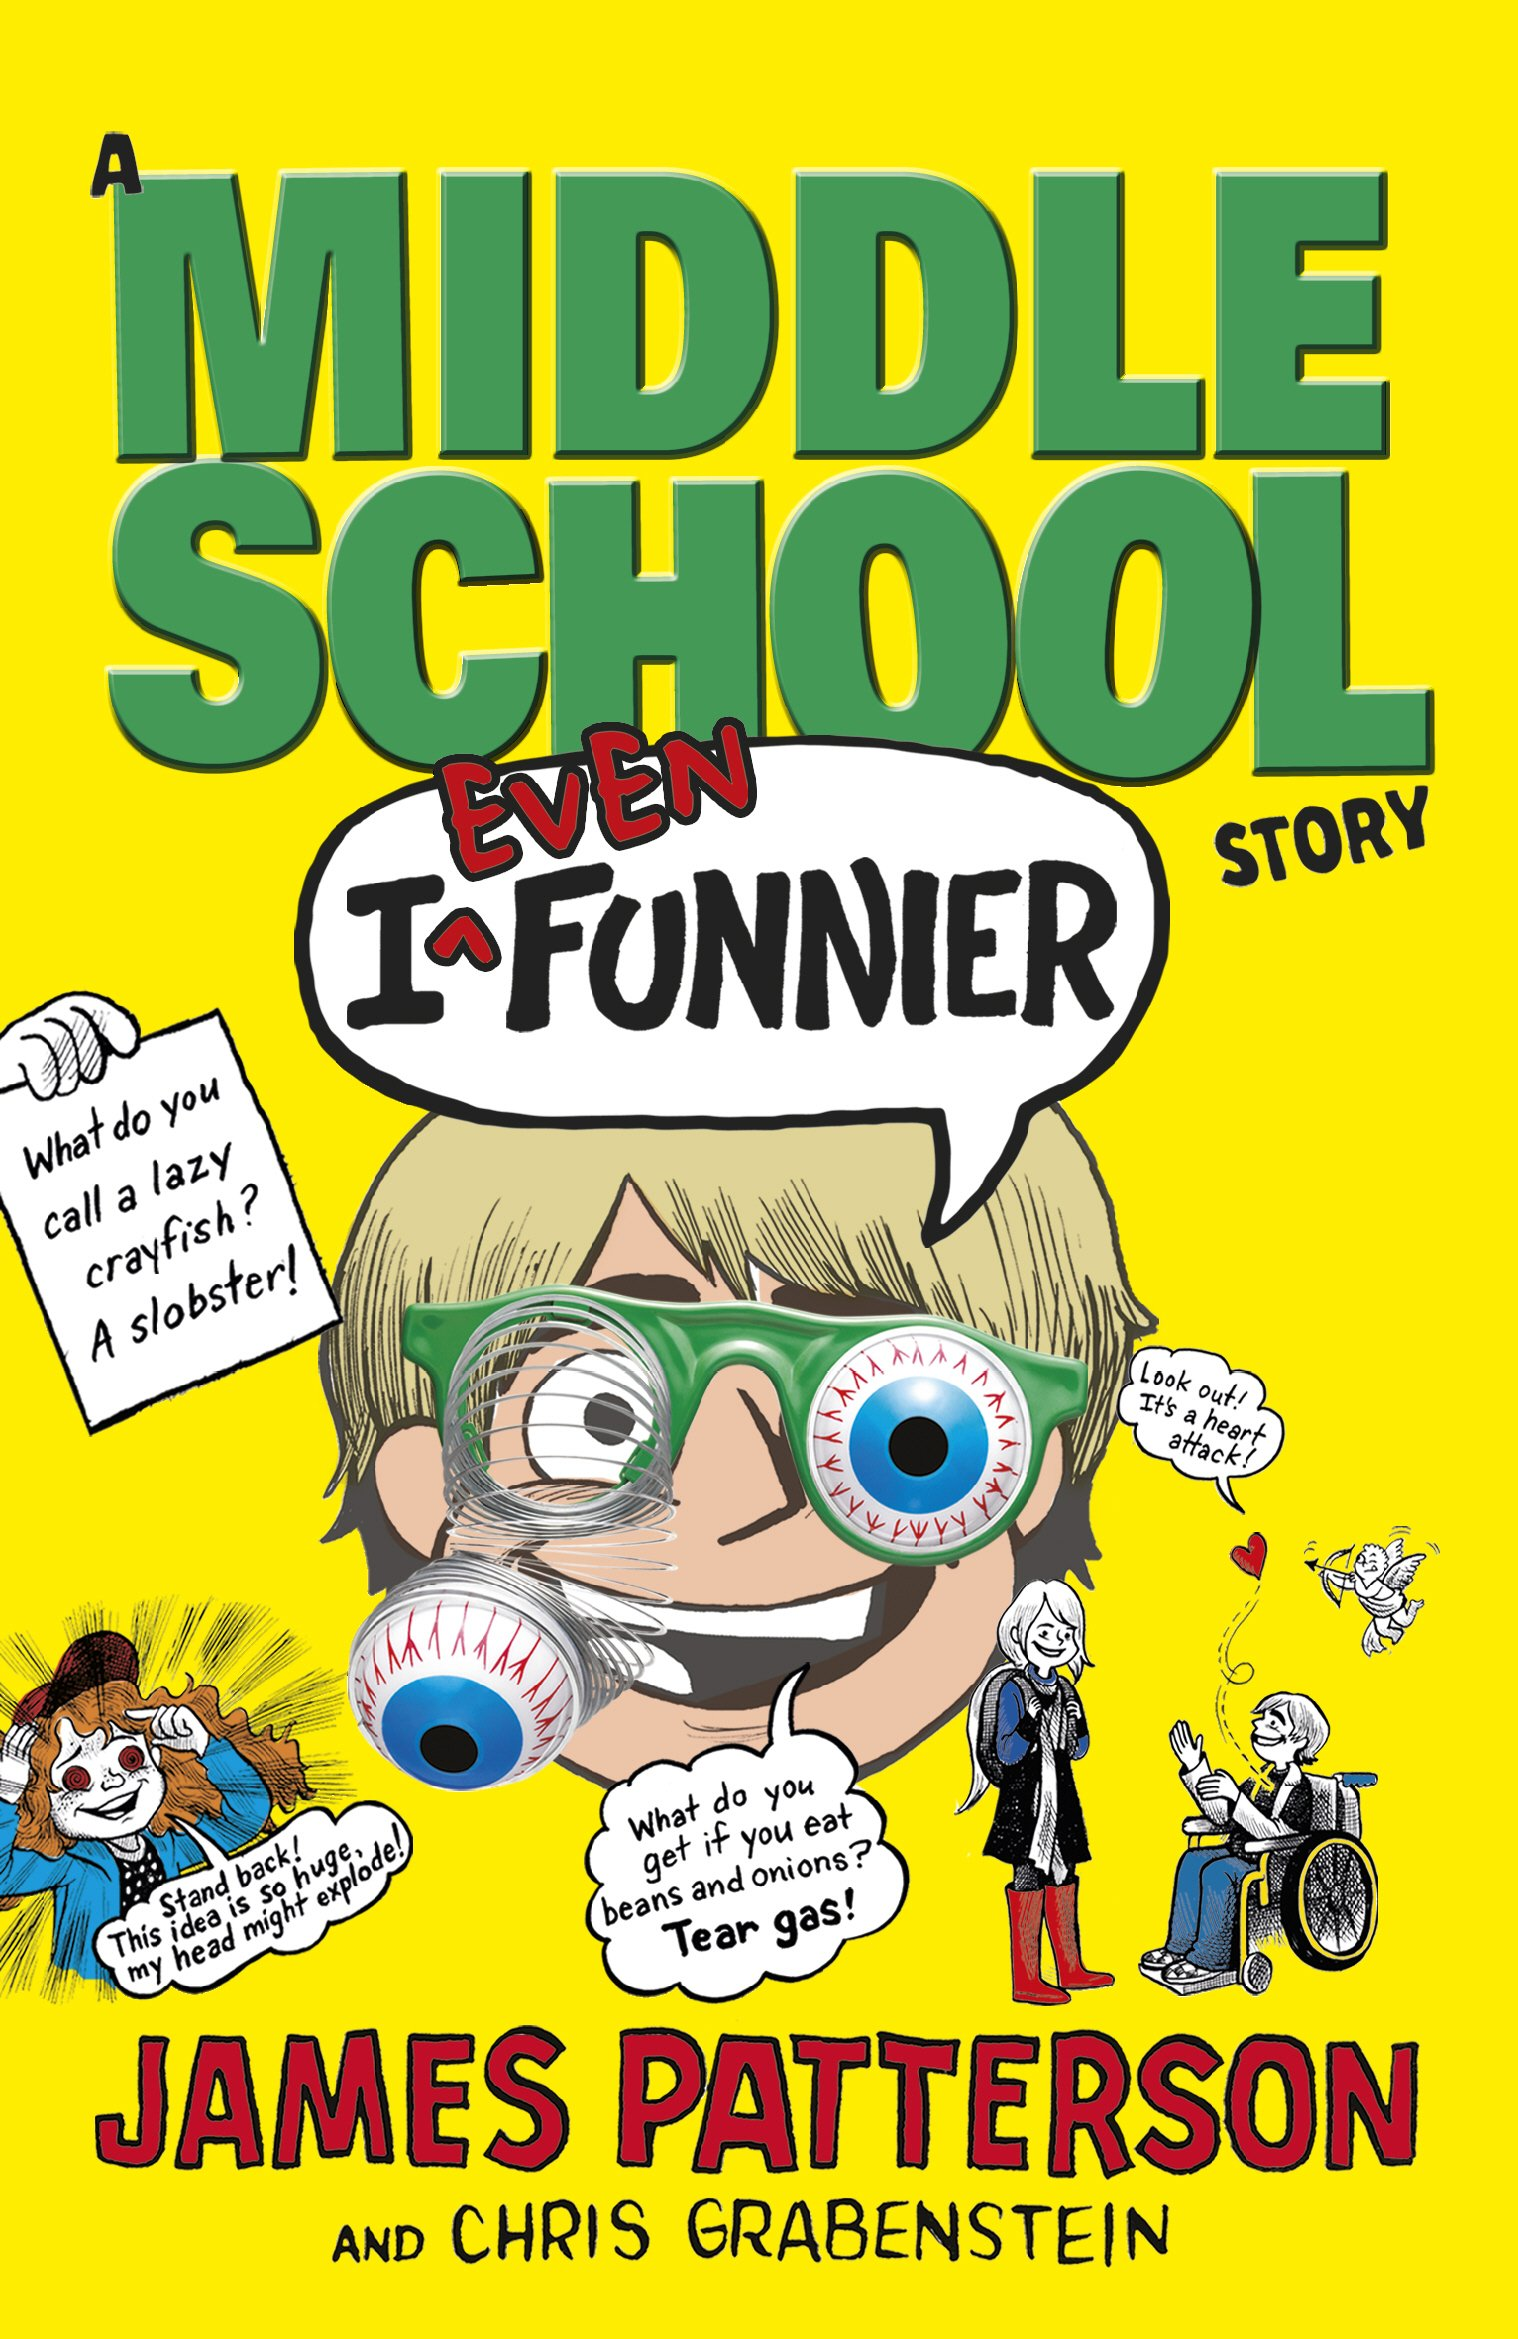 I Even Funnier: A Middle School Story pdf